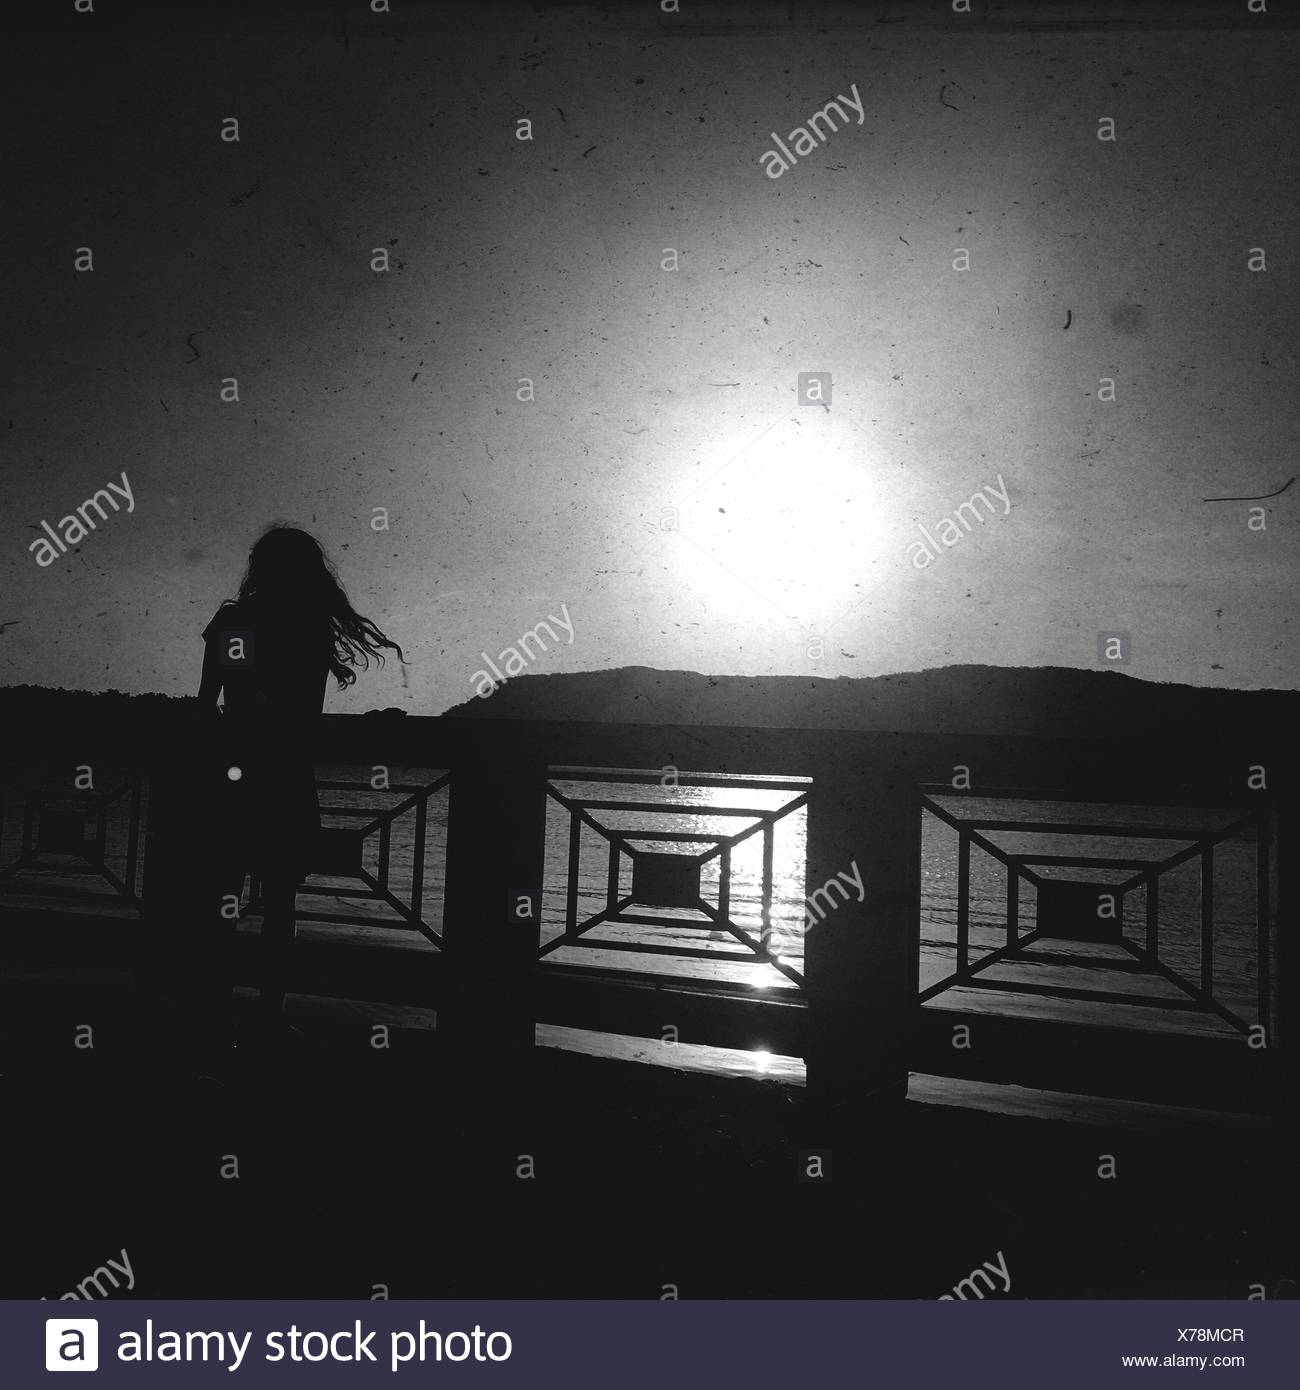 Silhouette Standing On Footbridge Over River Against Bright Sky - Stock Image